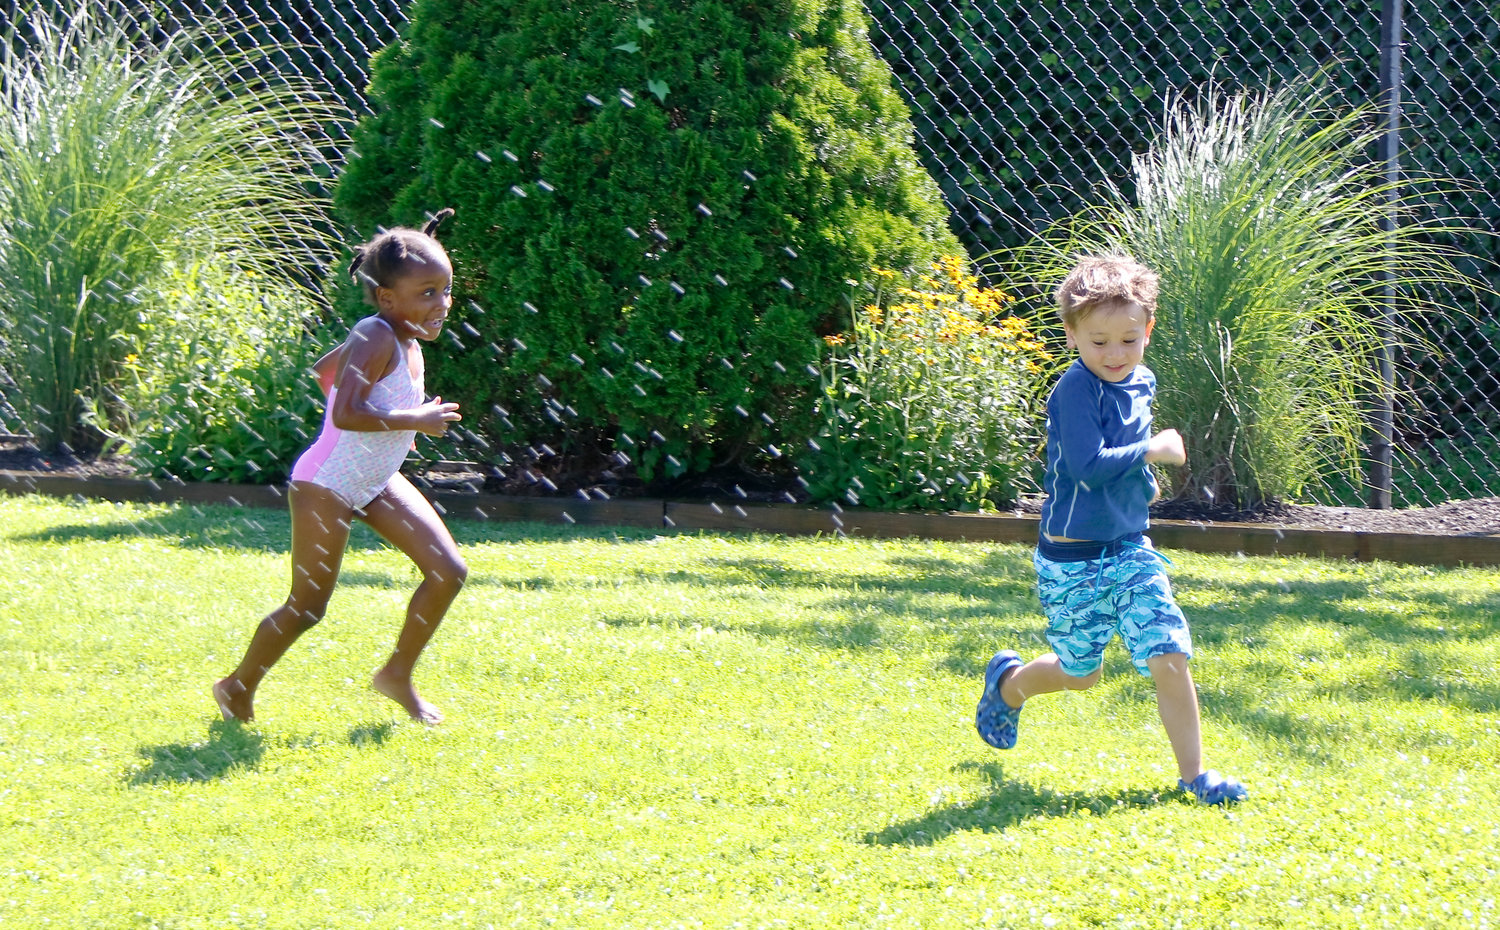 Xhara Ramsay, left, played a sprinkler-based game with Cameron Ho.